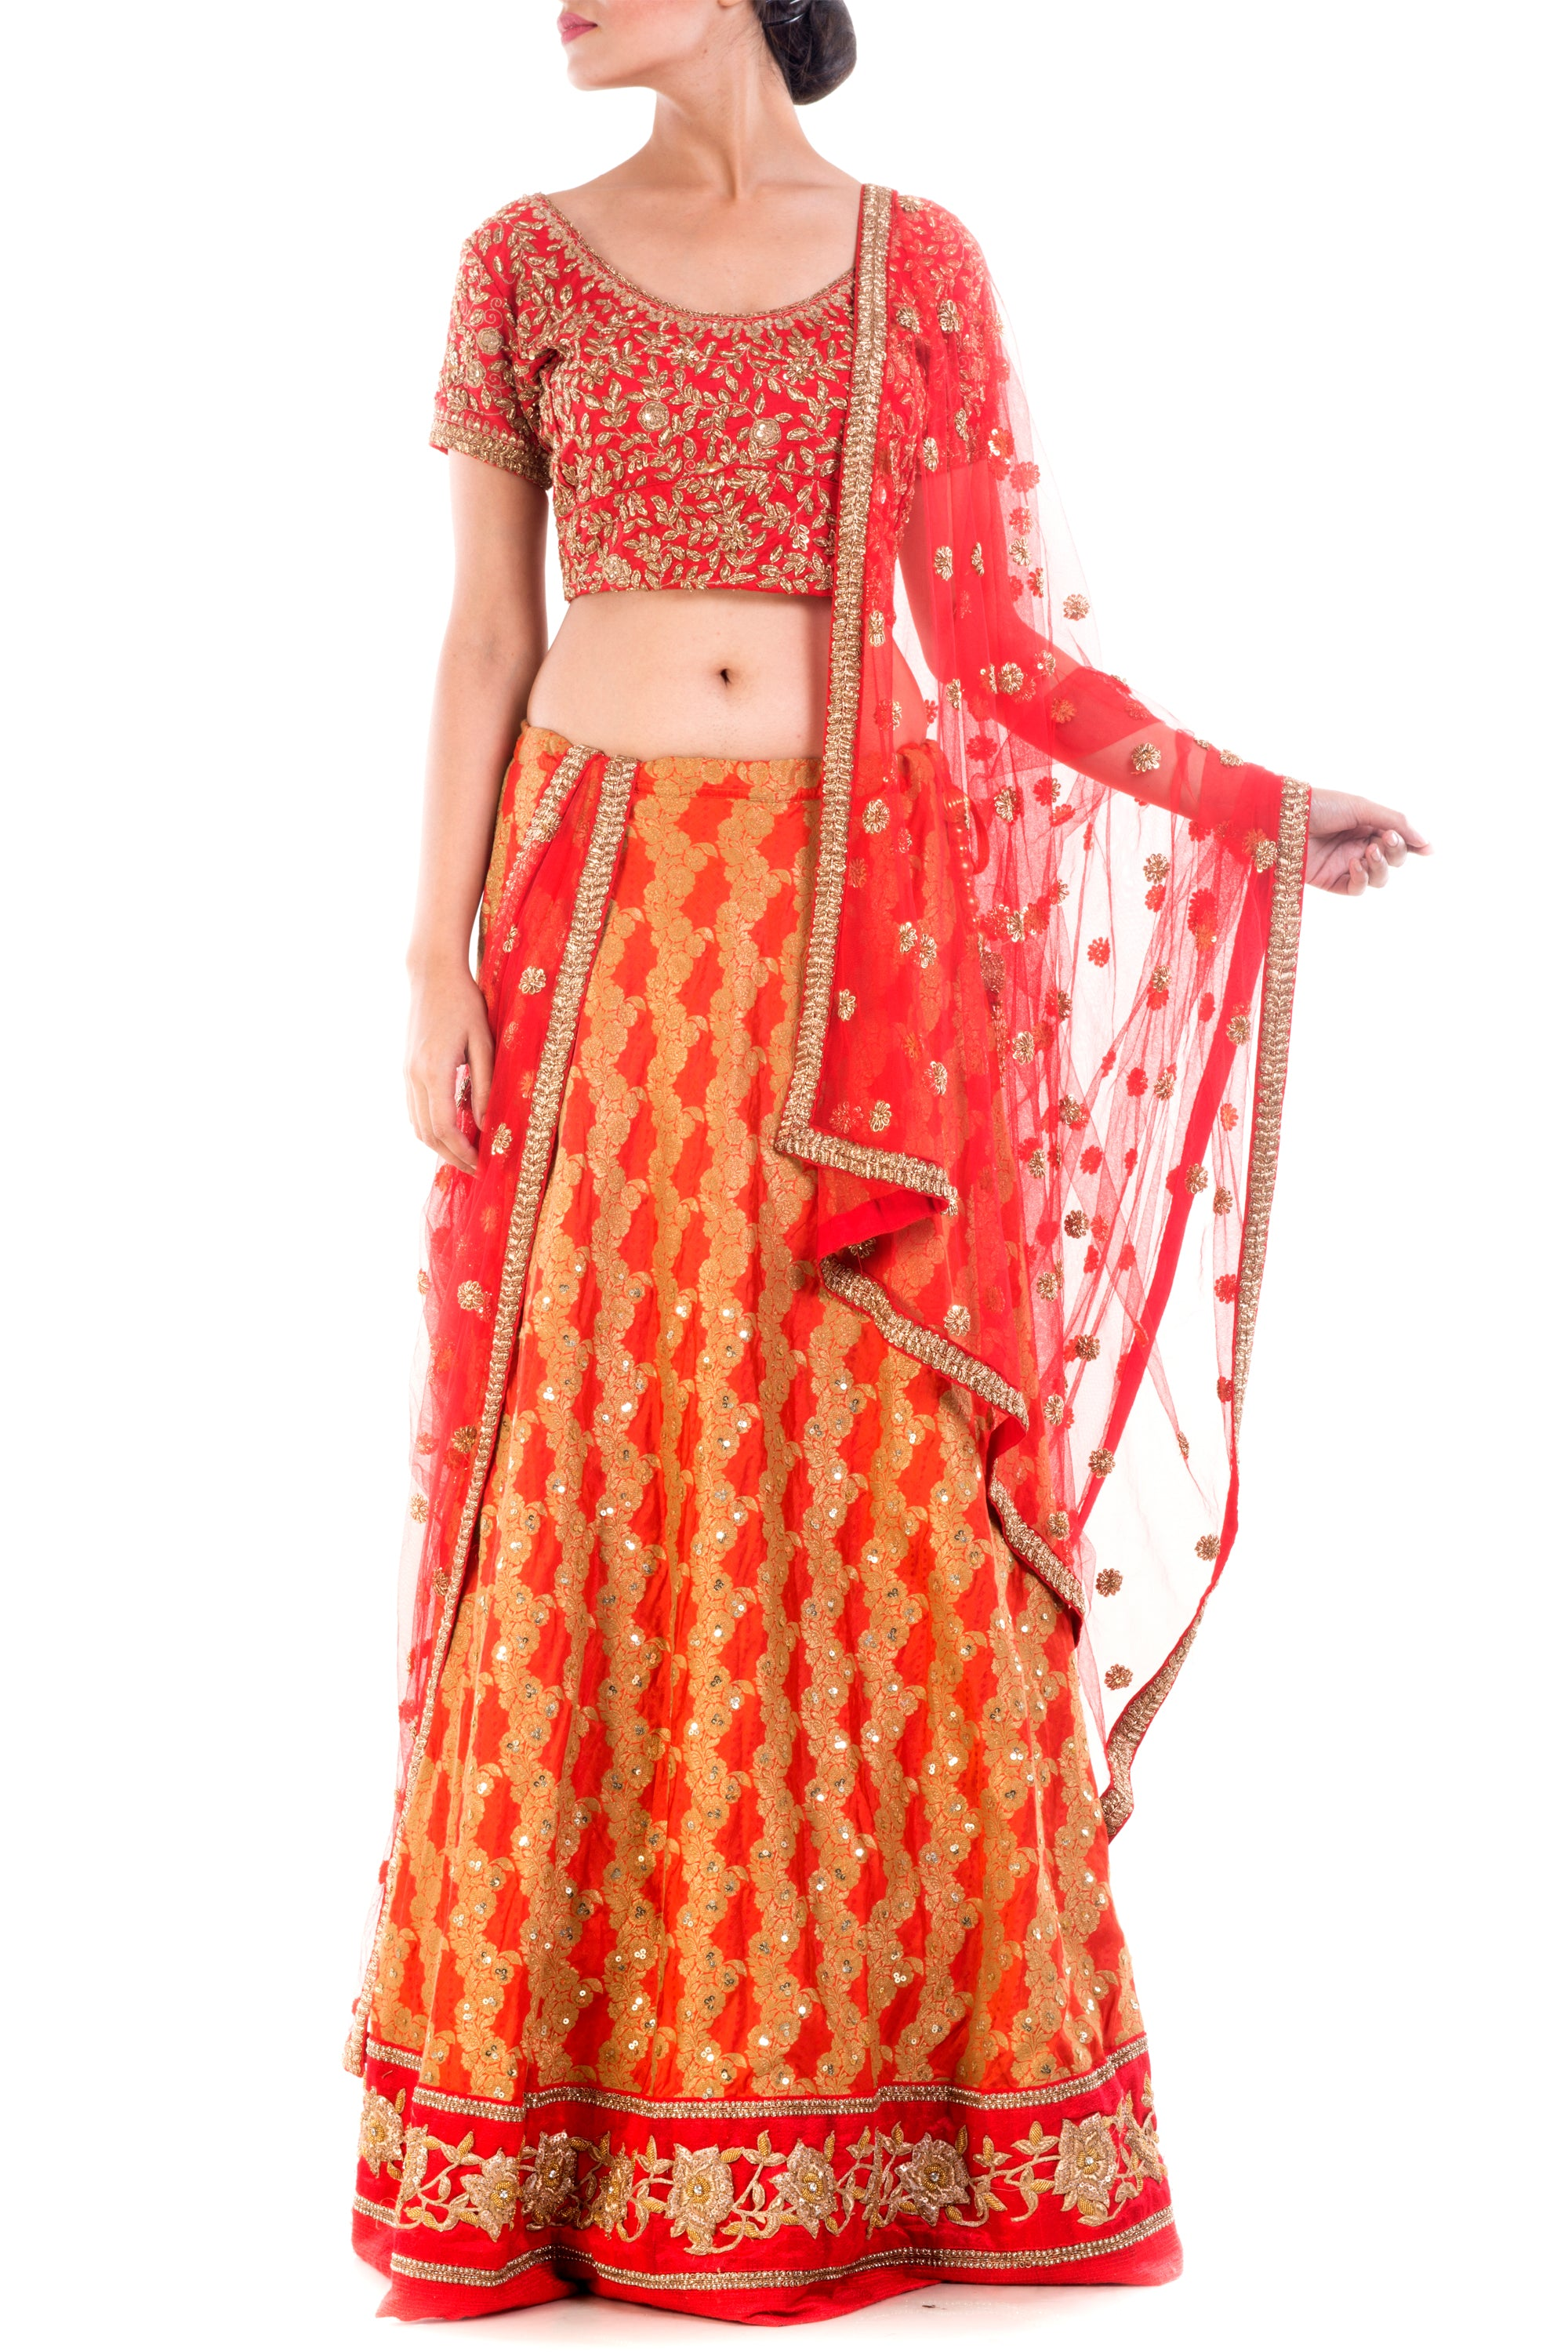 Crimson Red Gold Embellished Bridal Lehenga Front